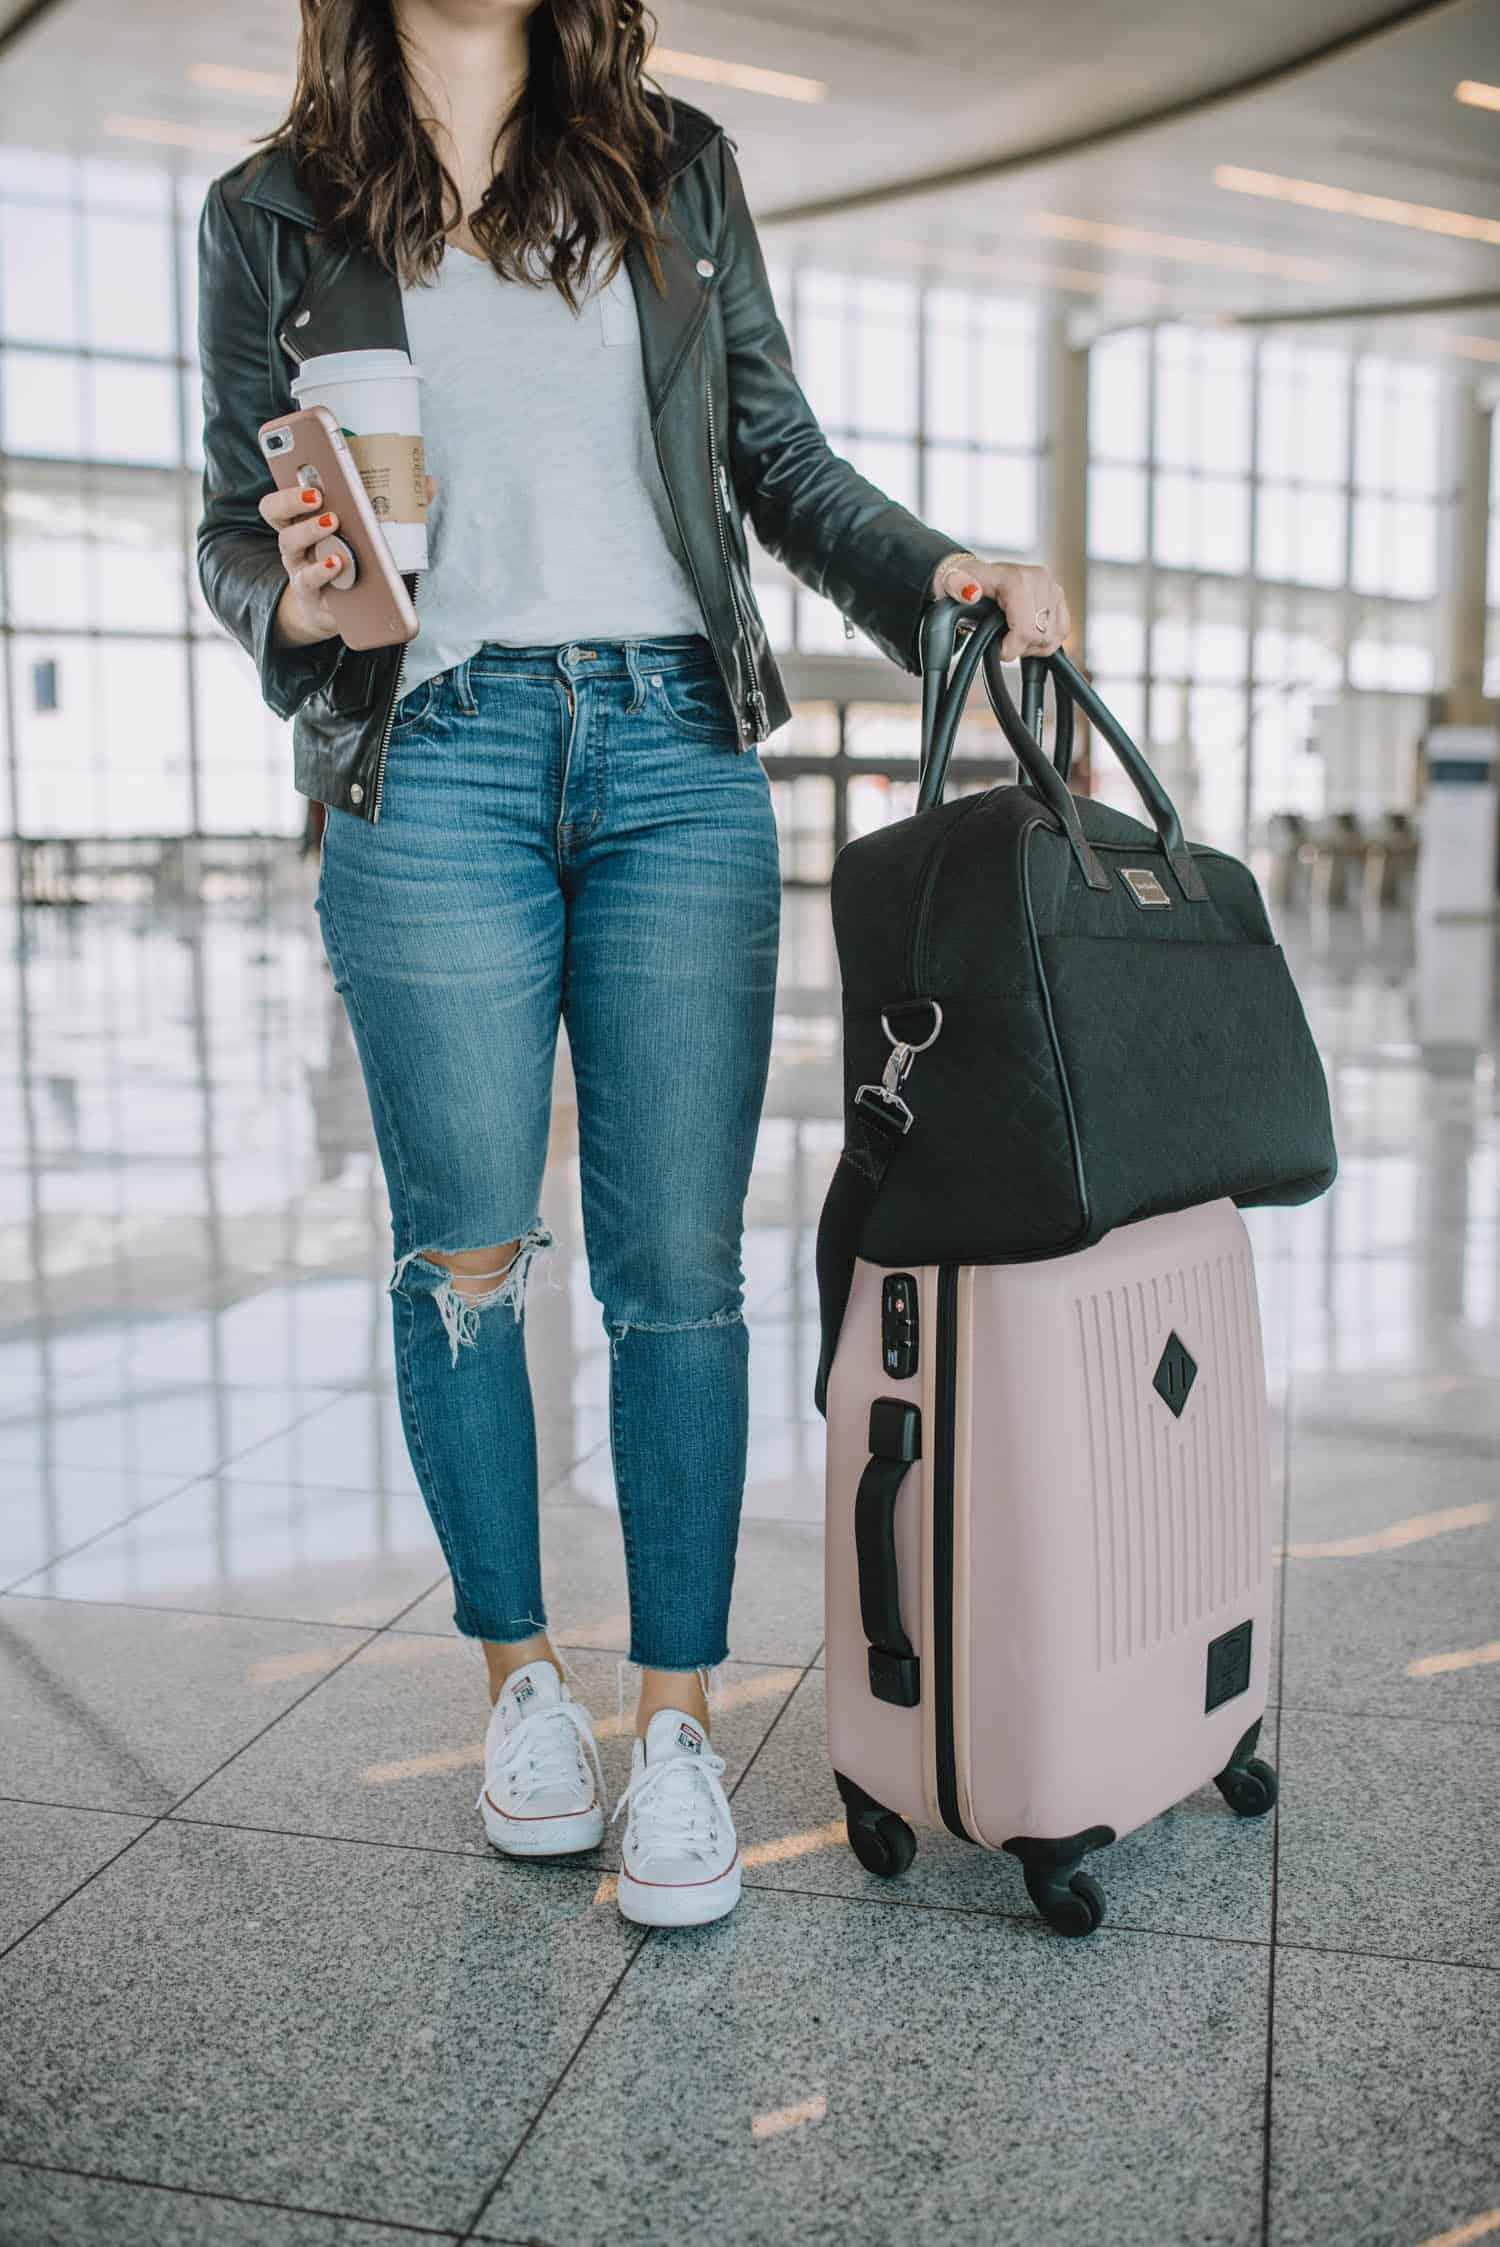 Comfortable Outfits To Wear On A Plane